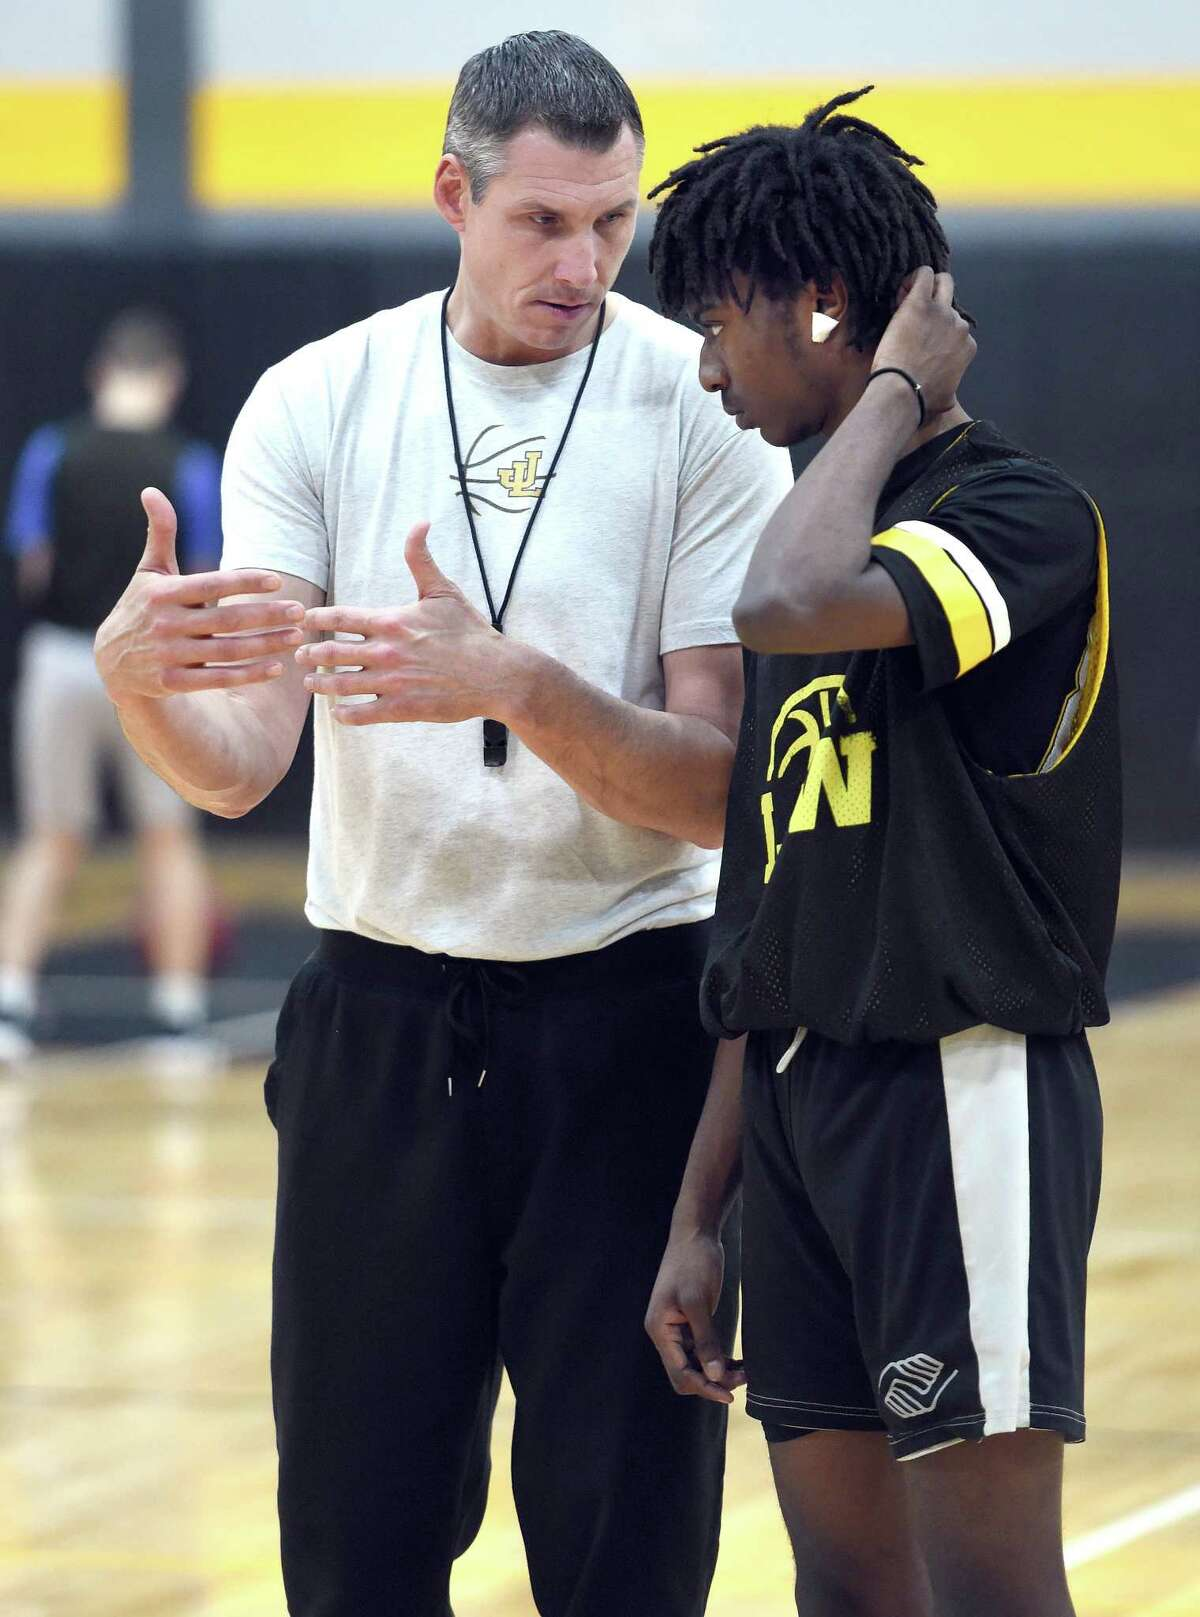 Law coach Jamie Anderson speaks with Diontae Eady during practice in Milford on Friday.